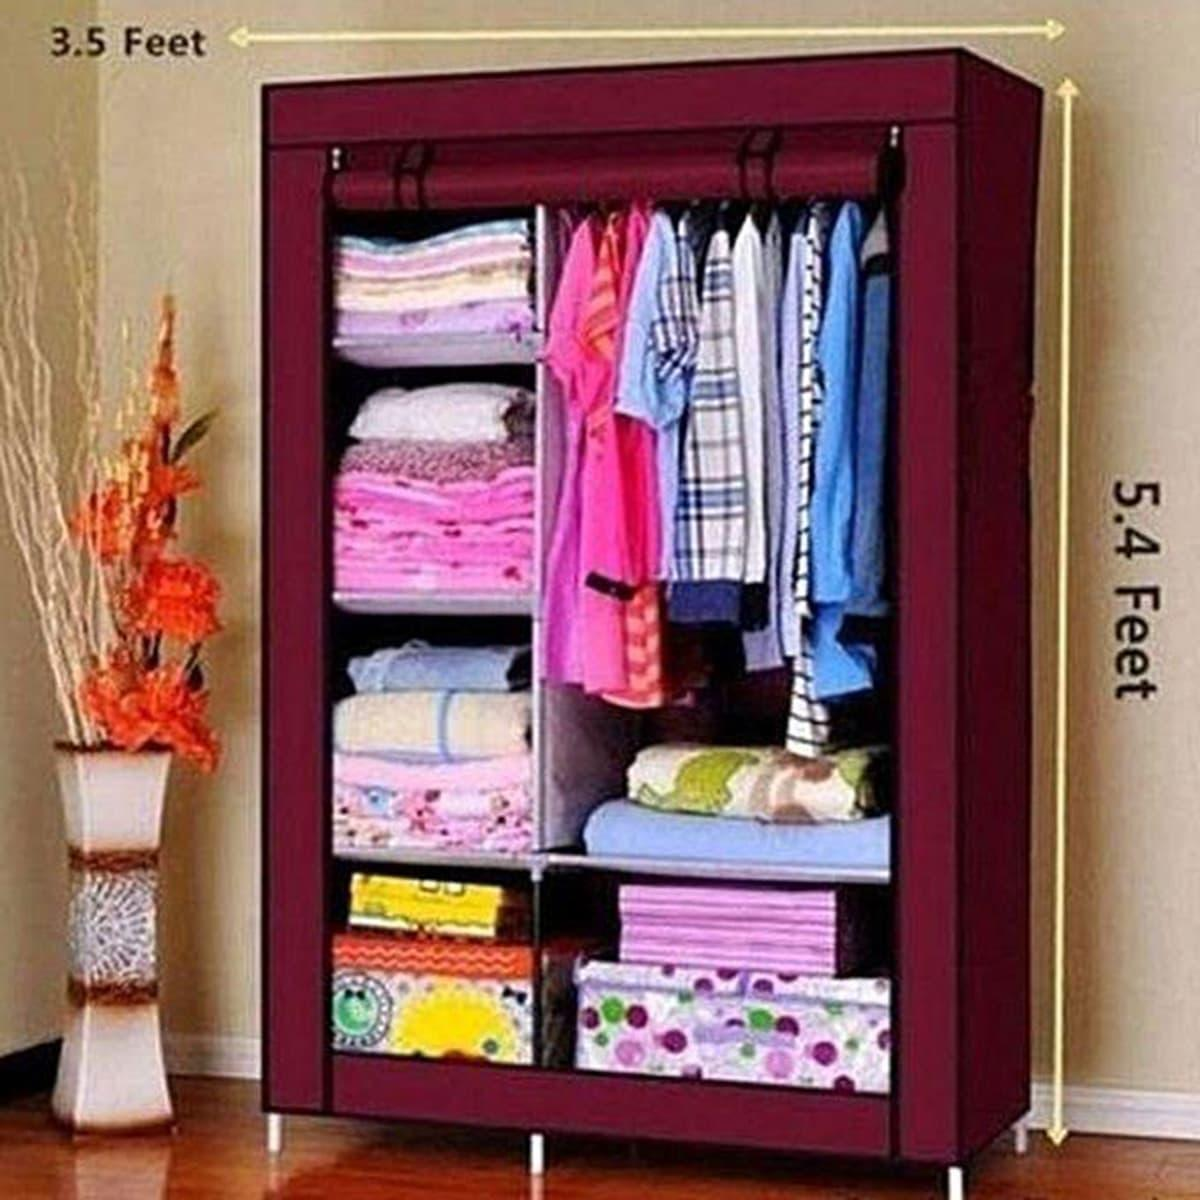 740aaa7f2 Anbobo Non-Woven Fabric Wardrobe Portable Clothes Closet Storage Organizer  (Maroon)